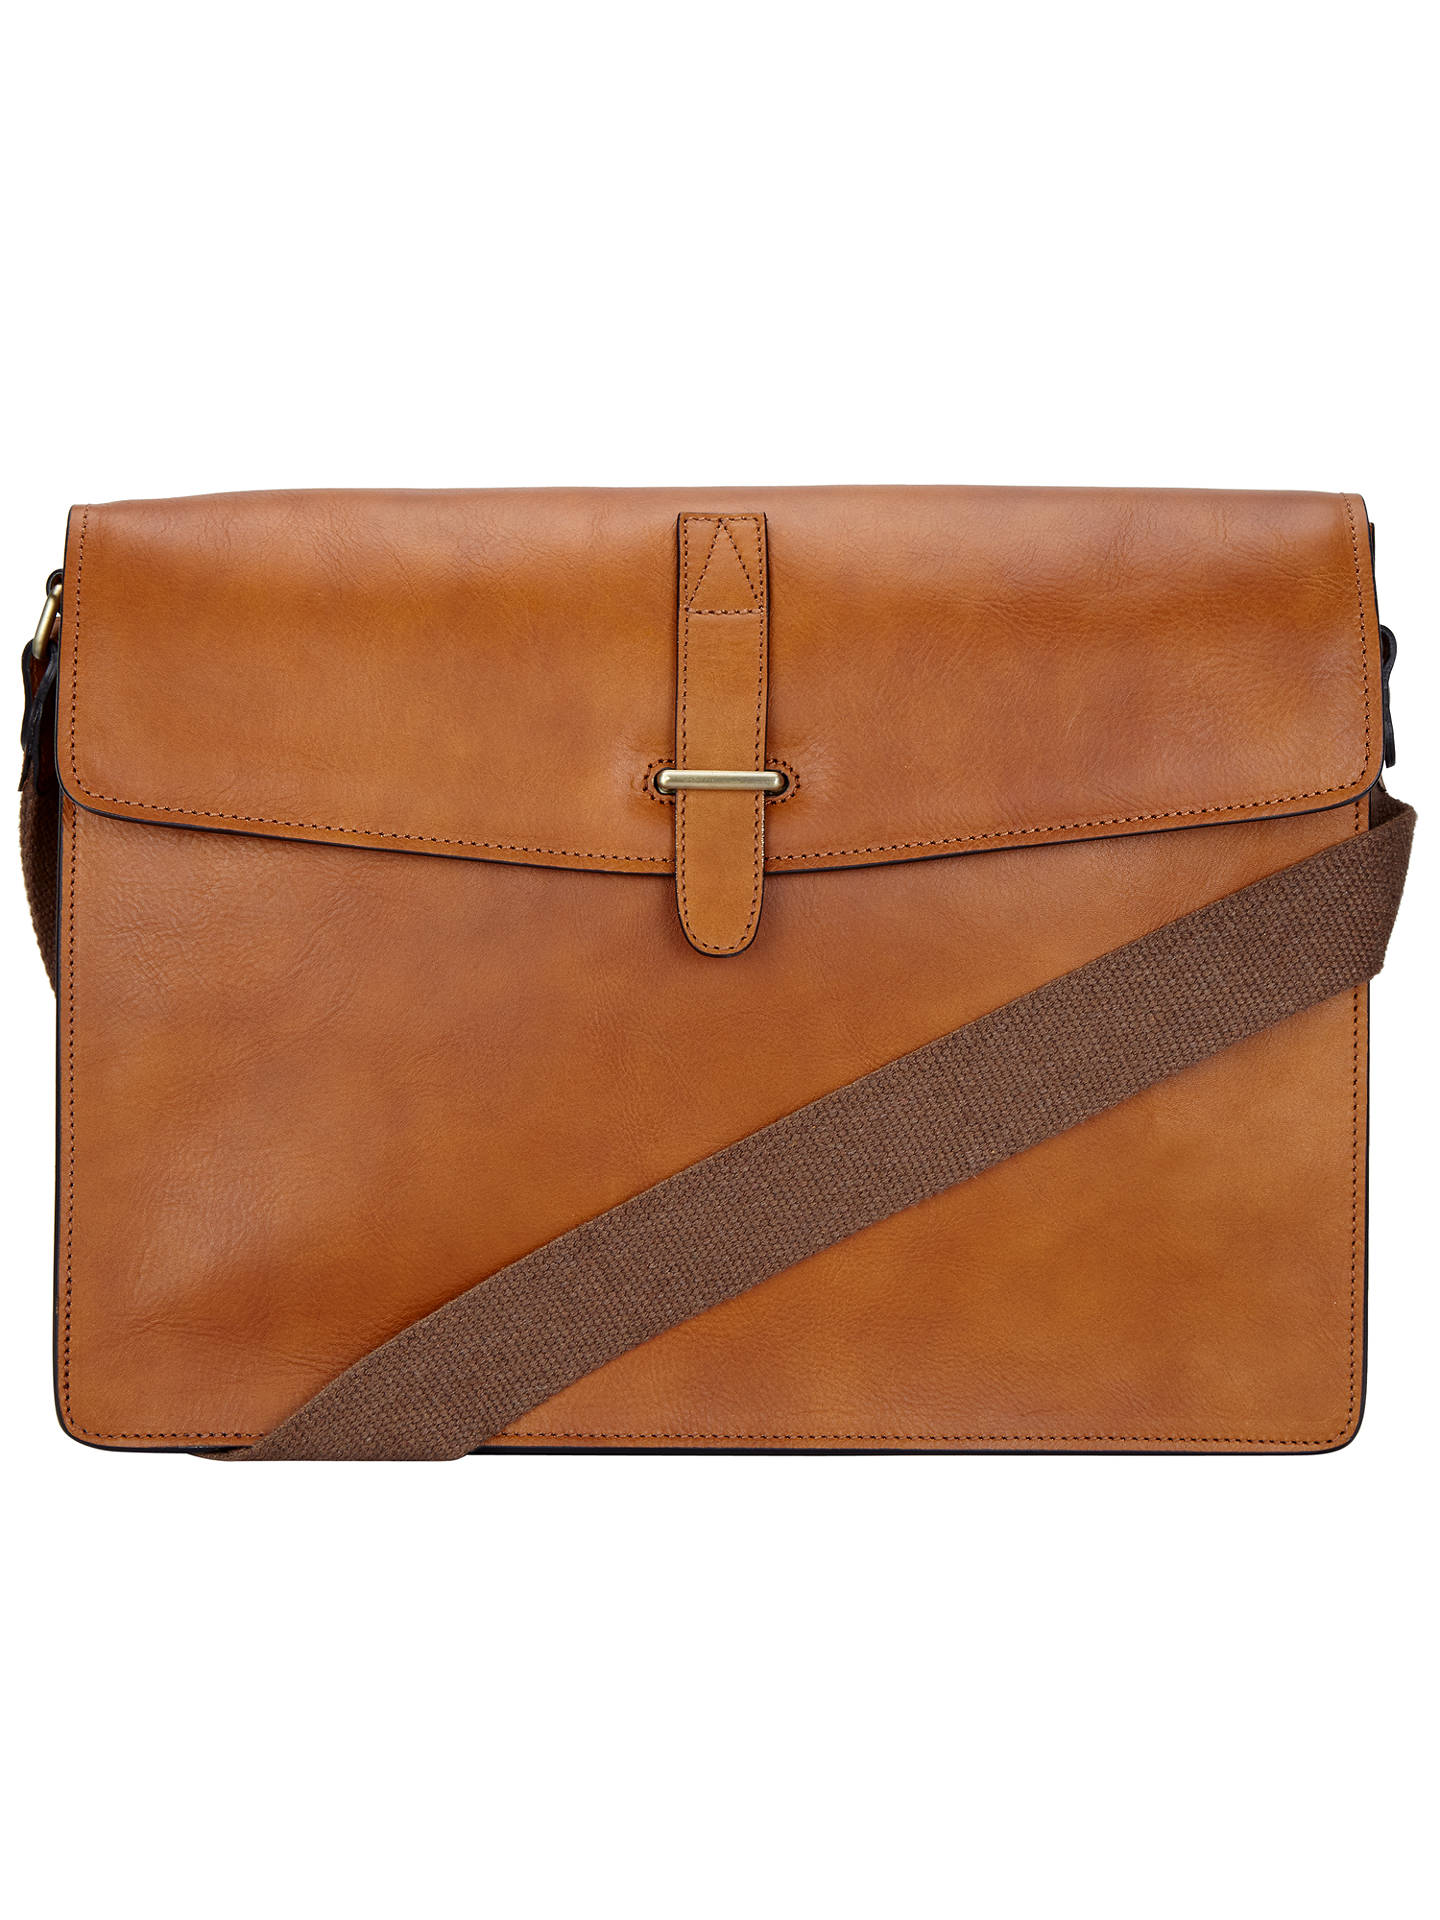 John Lewis   Partners Made in Italy Leather Messenger Bag at John ... 654a99fb1892b